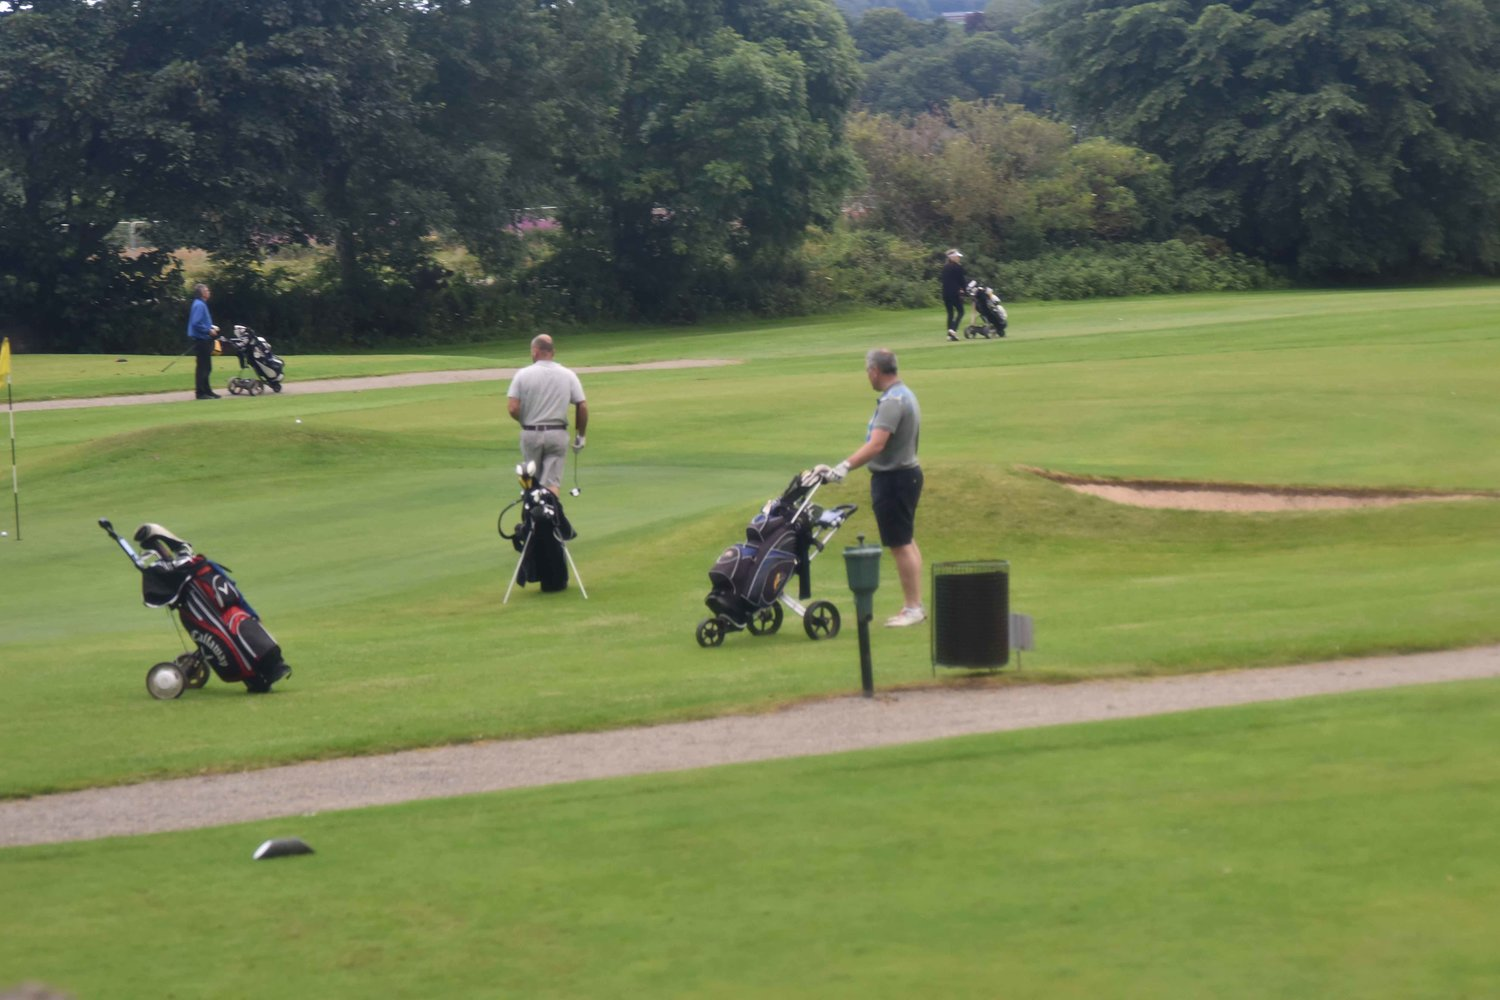 Golf course, Scottish highlands, Scotland, drive from Inverness to Loch Ness. Image©thingstodot.com